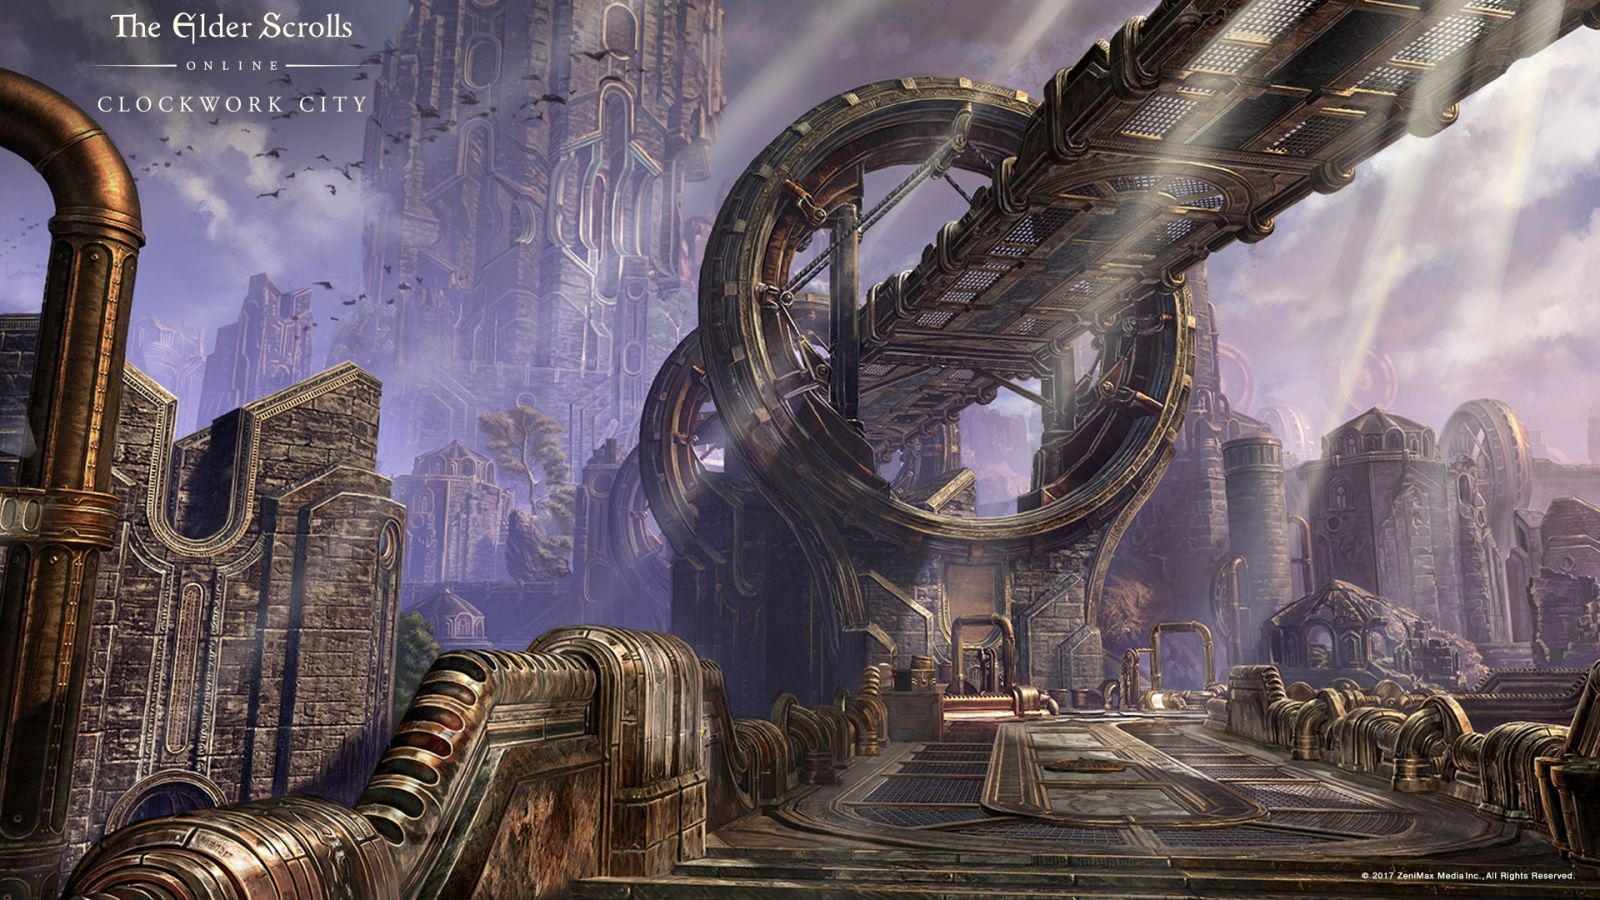 The Elder Scrolls Online Clockwork City Makes Steampunk Fans